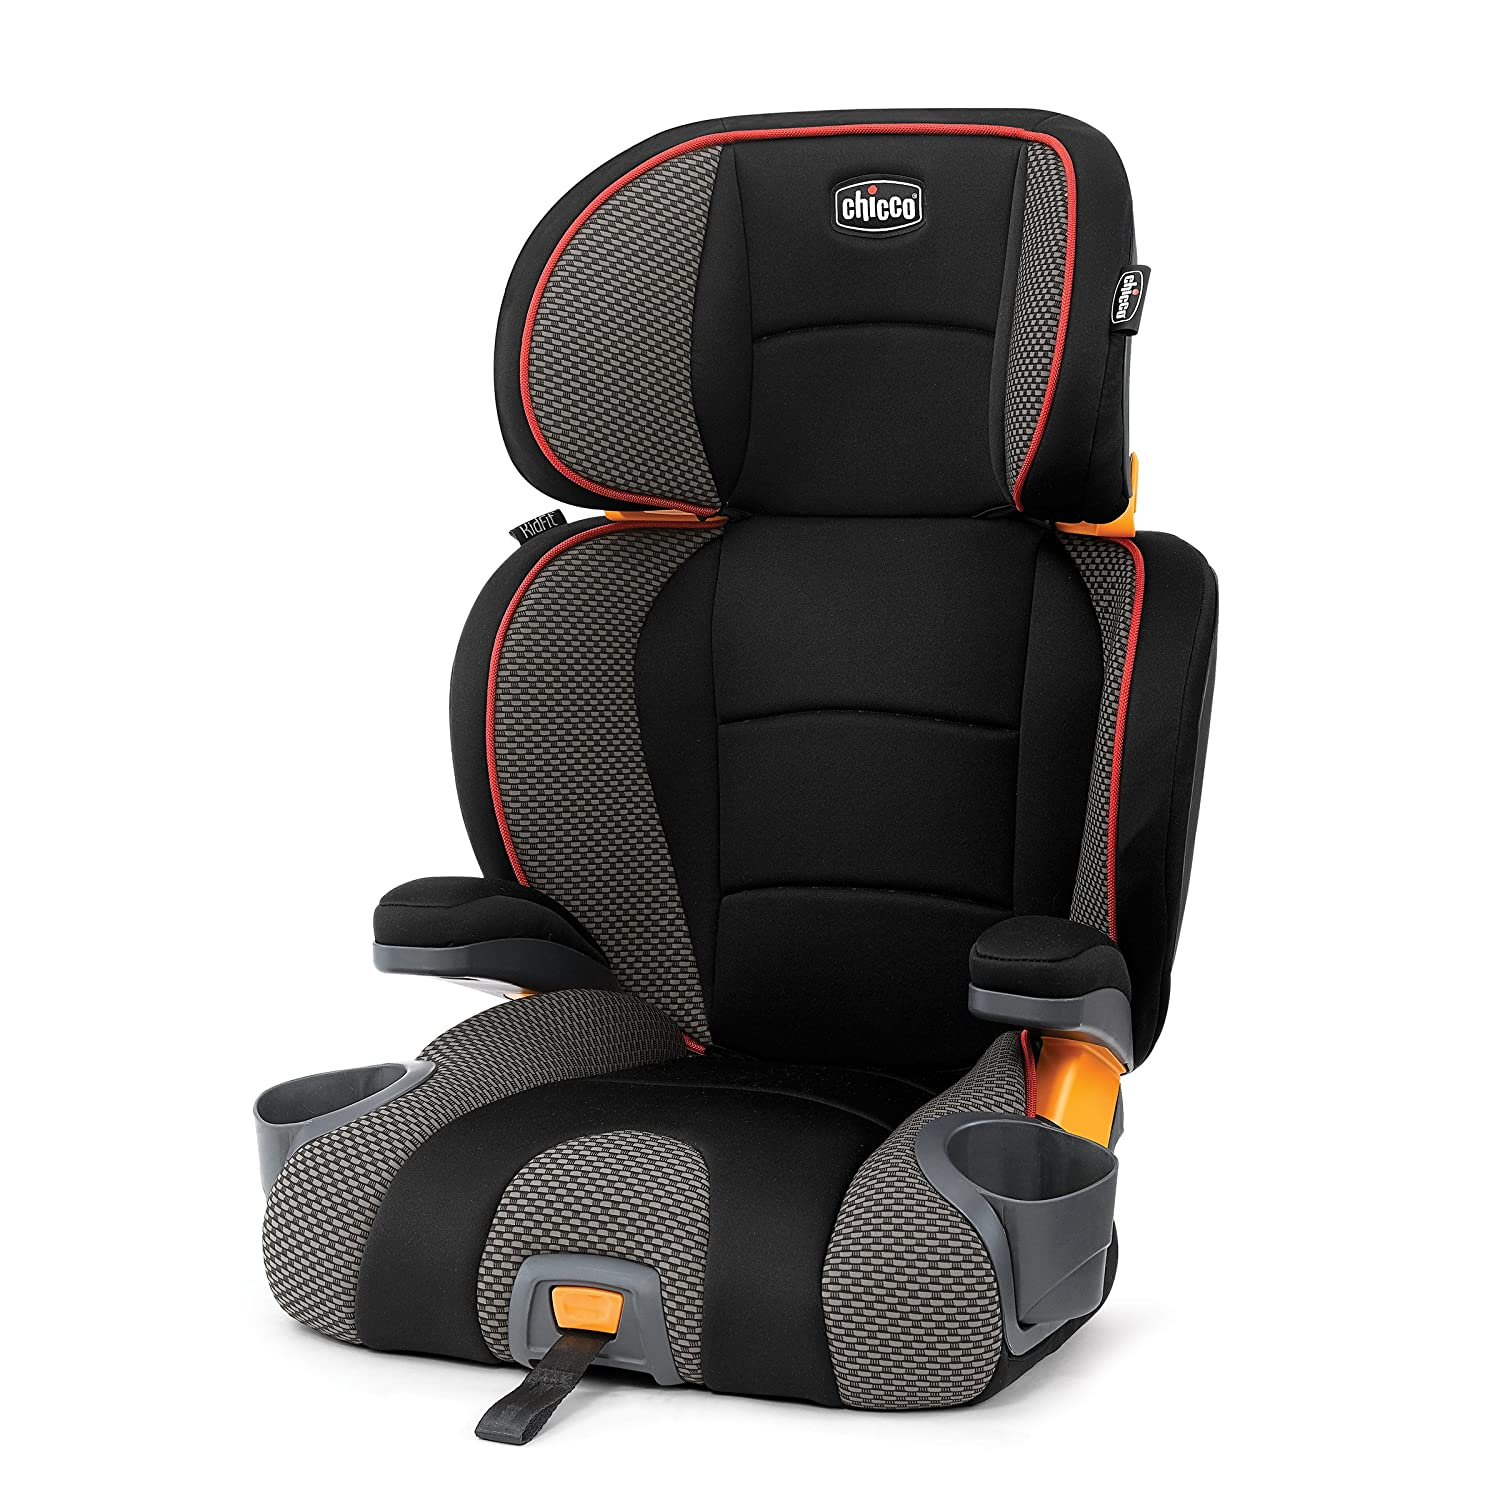 Chicco KidFit 2-in-1 Belt-Positioning Booster Car Seat- Atmosphere